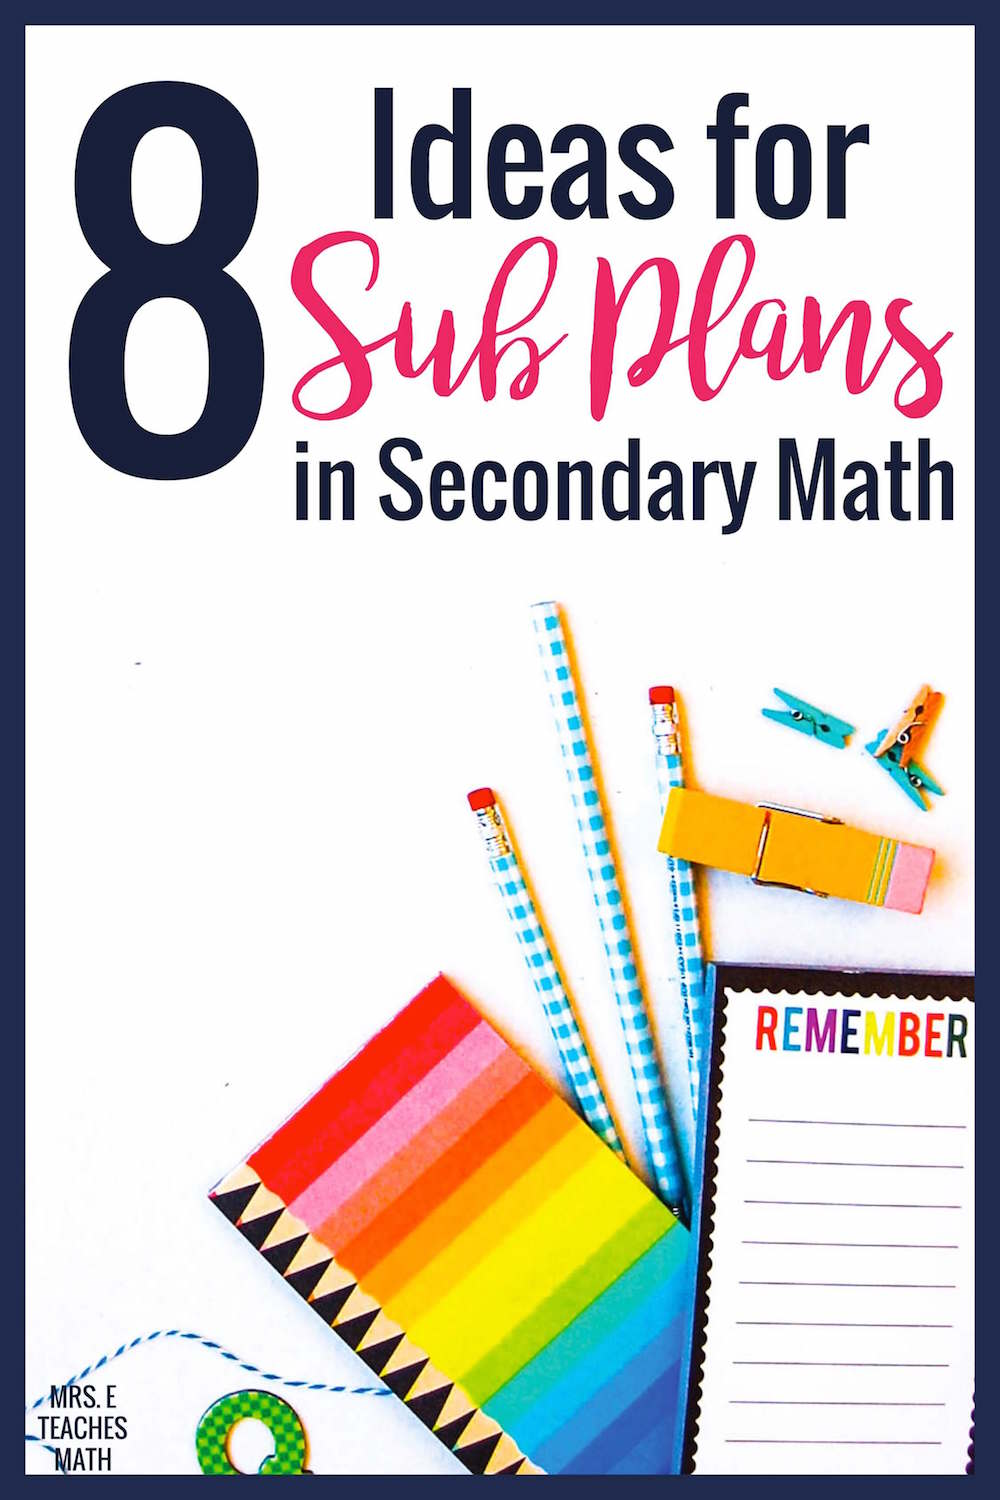 8 Ideas for Sub Plans in Secondary Math   Mrs. E Teaches Math [ 1500 x 1000 Pixel ]